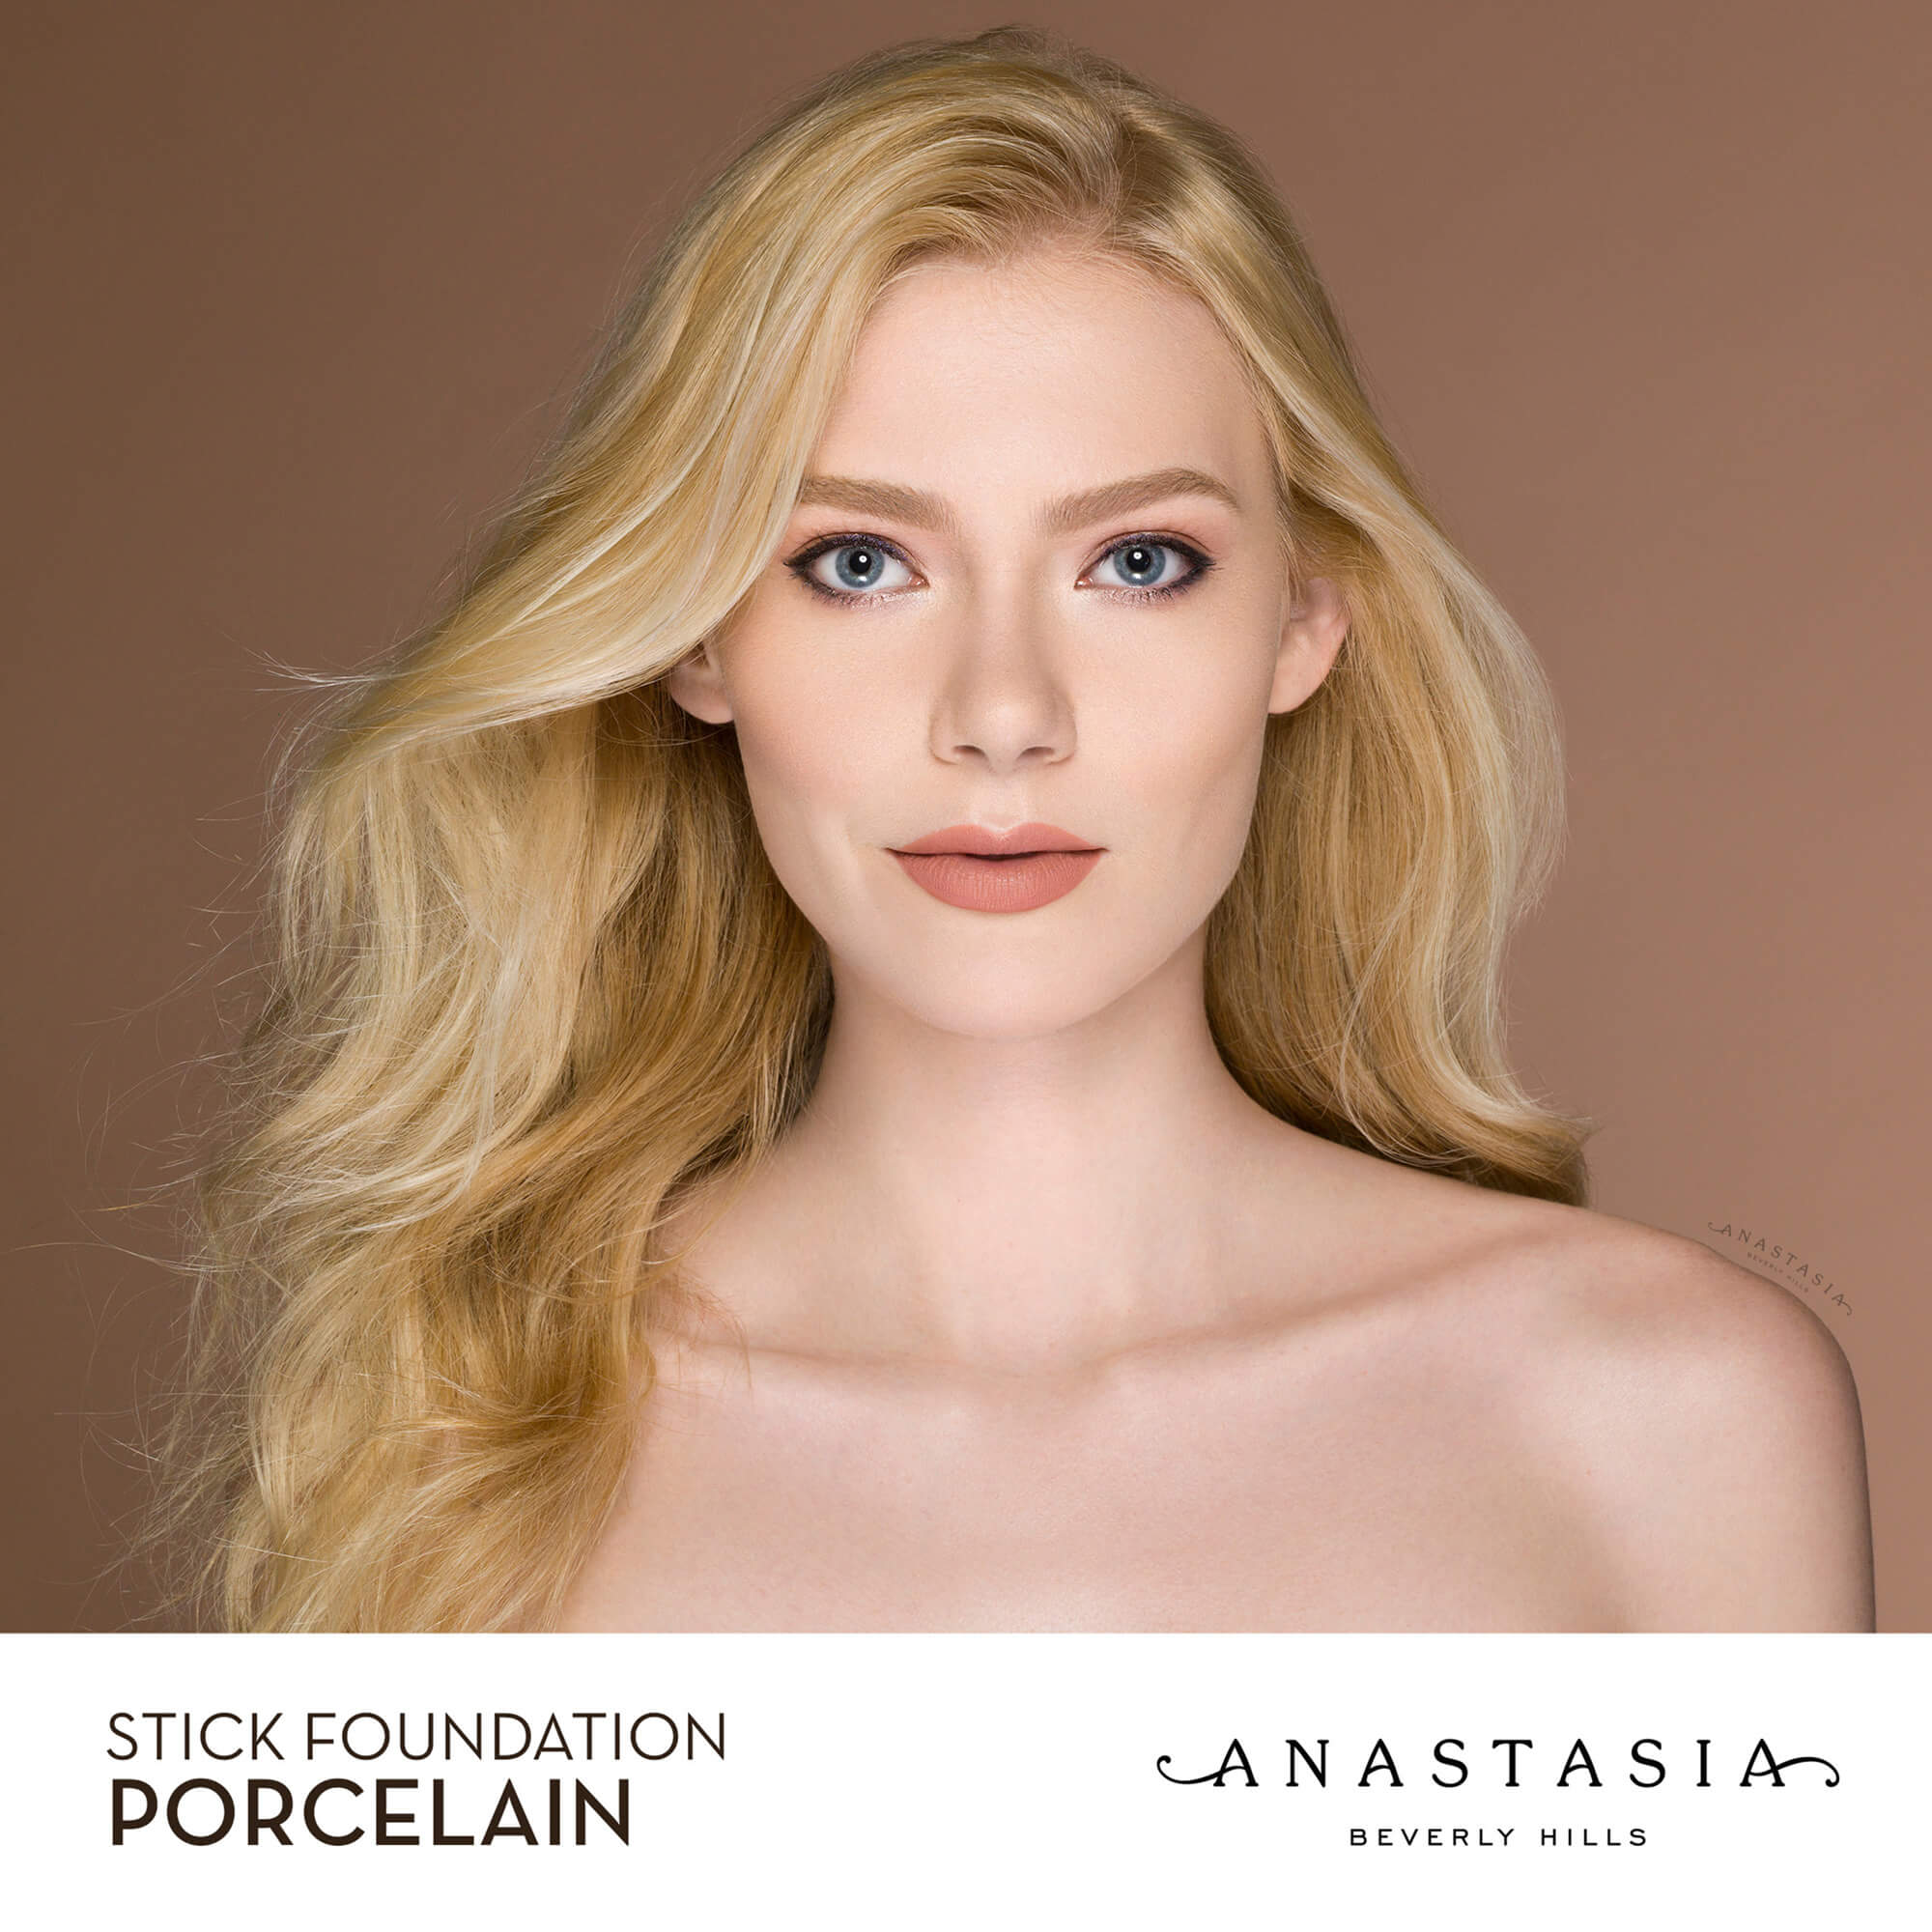 Stick Foundation - Porcelain